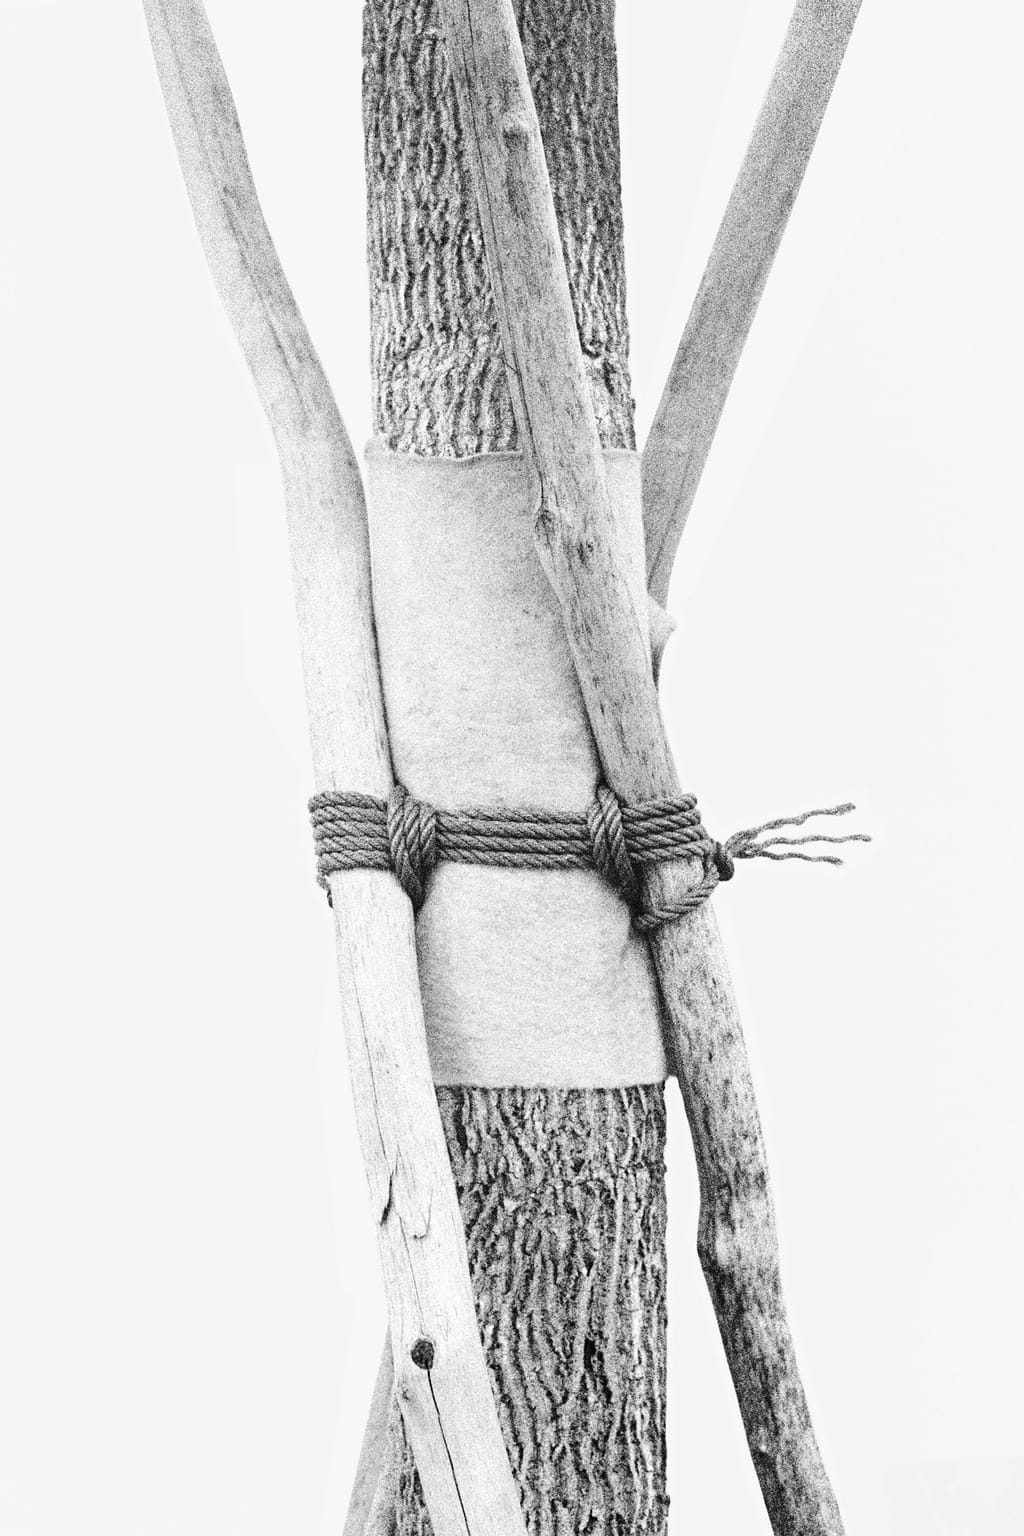 Black and white photo of a tree tied to several wooden branches, supporting it and protected by pieces of fabric; against a white background.